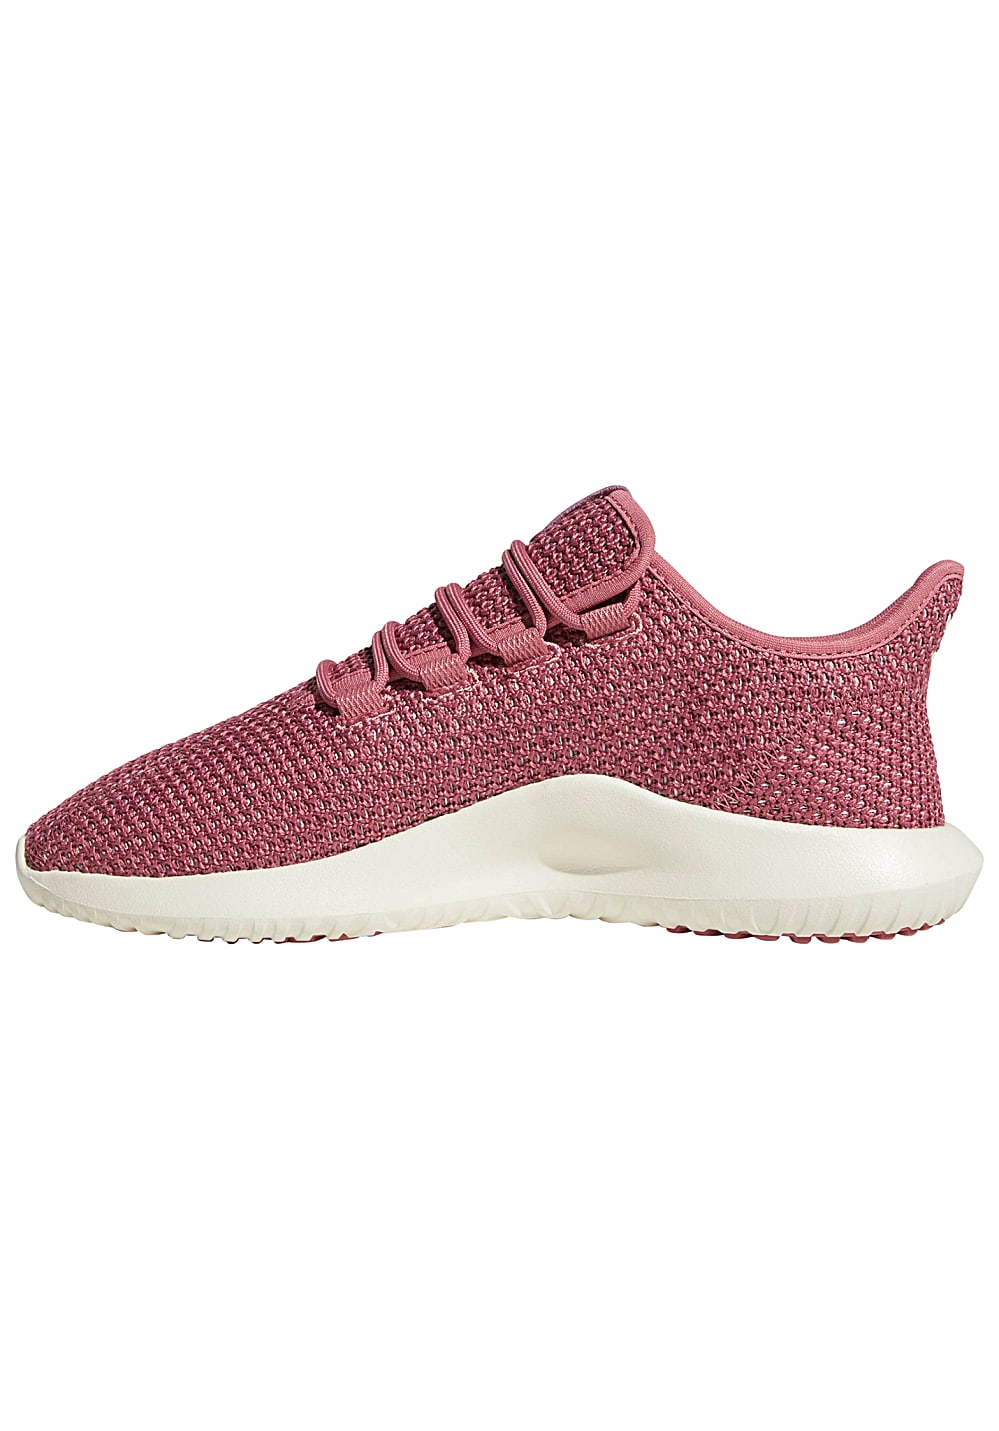 pretty nice 134ab a3f6b ADIDAS ORIGINALS Tubular Shadow Ck - Sneakers for Women - Red